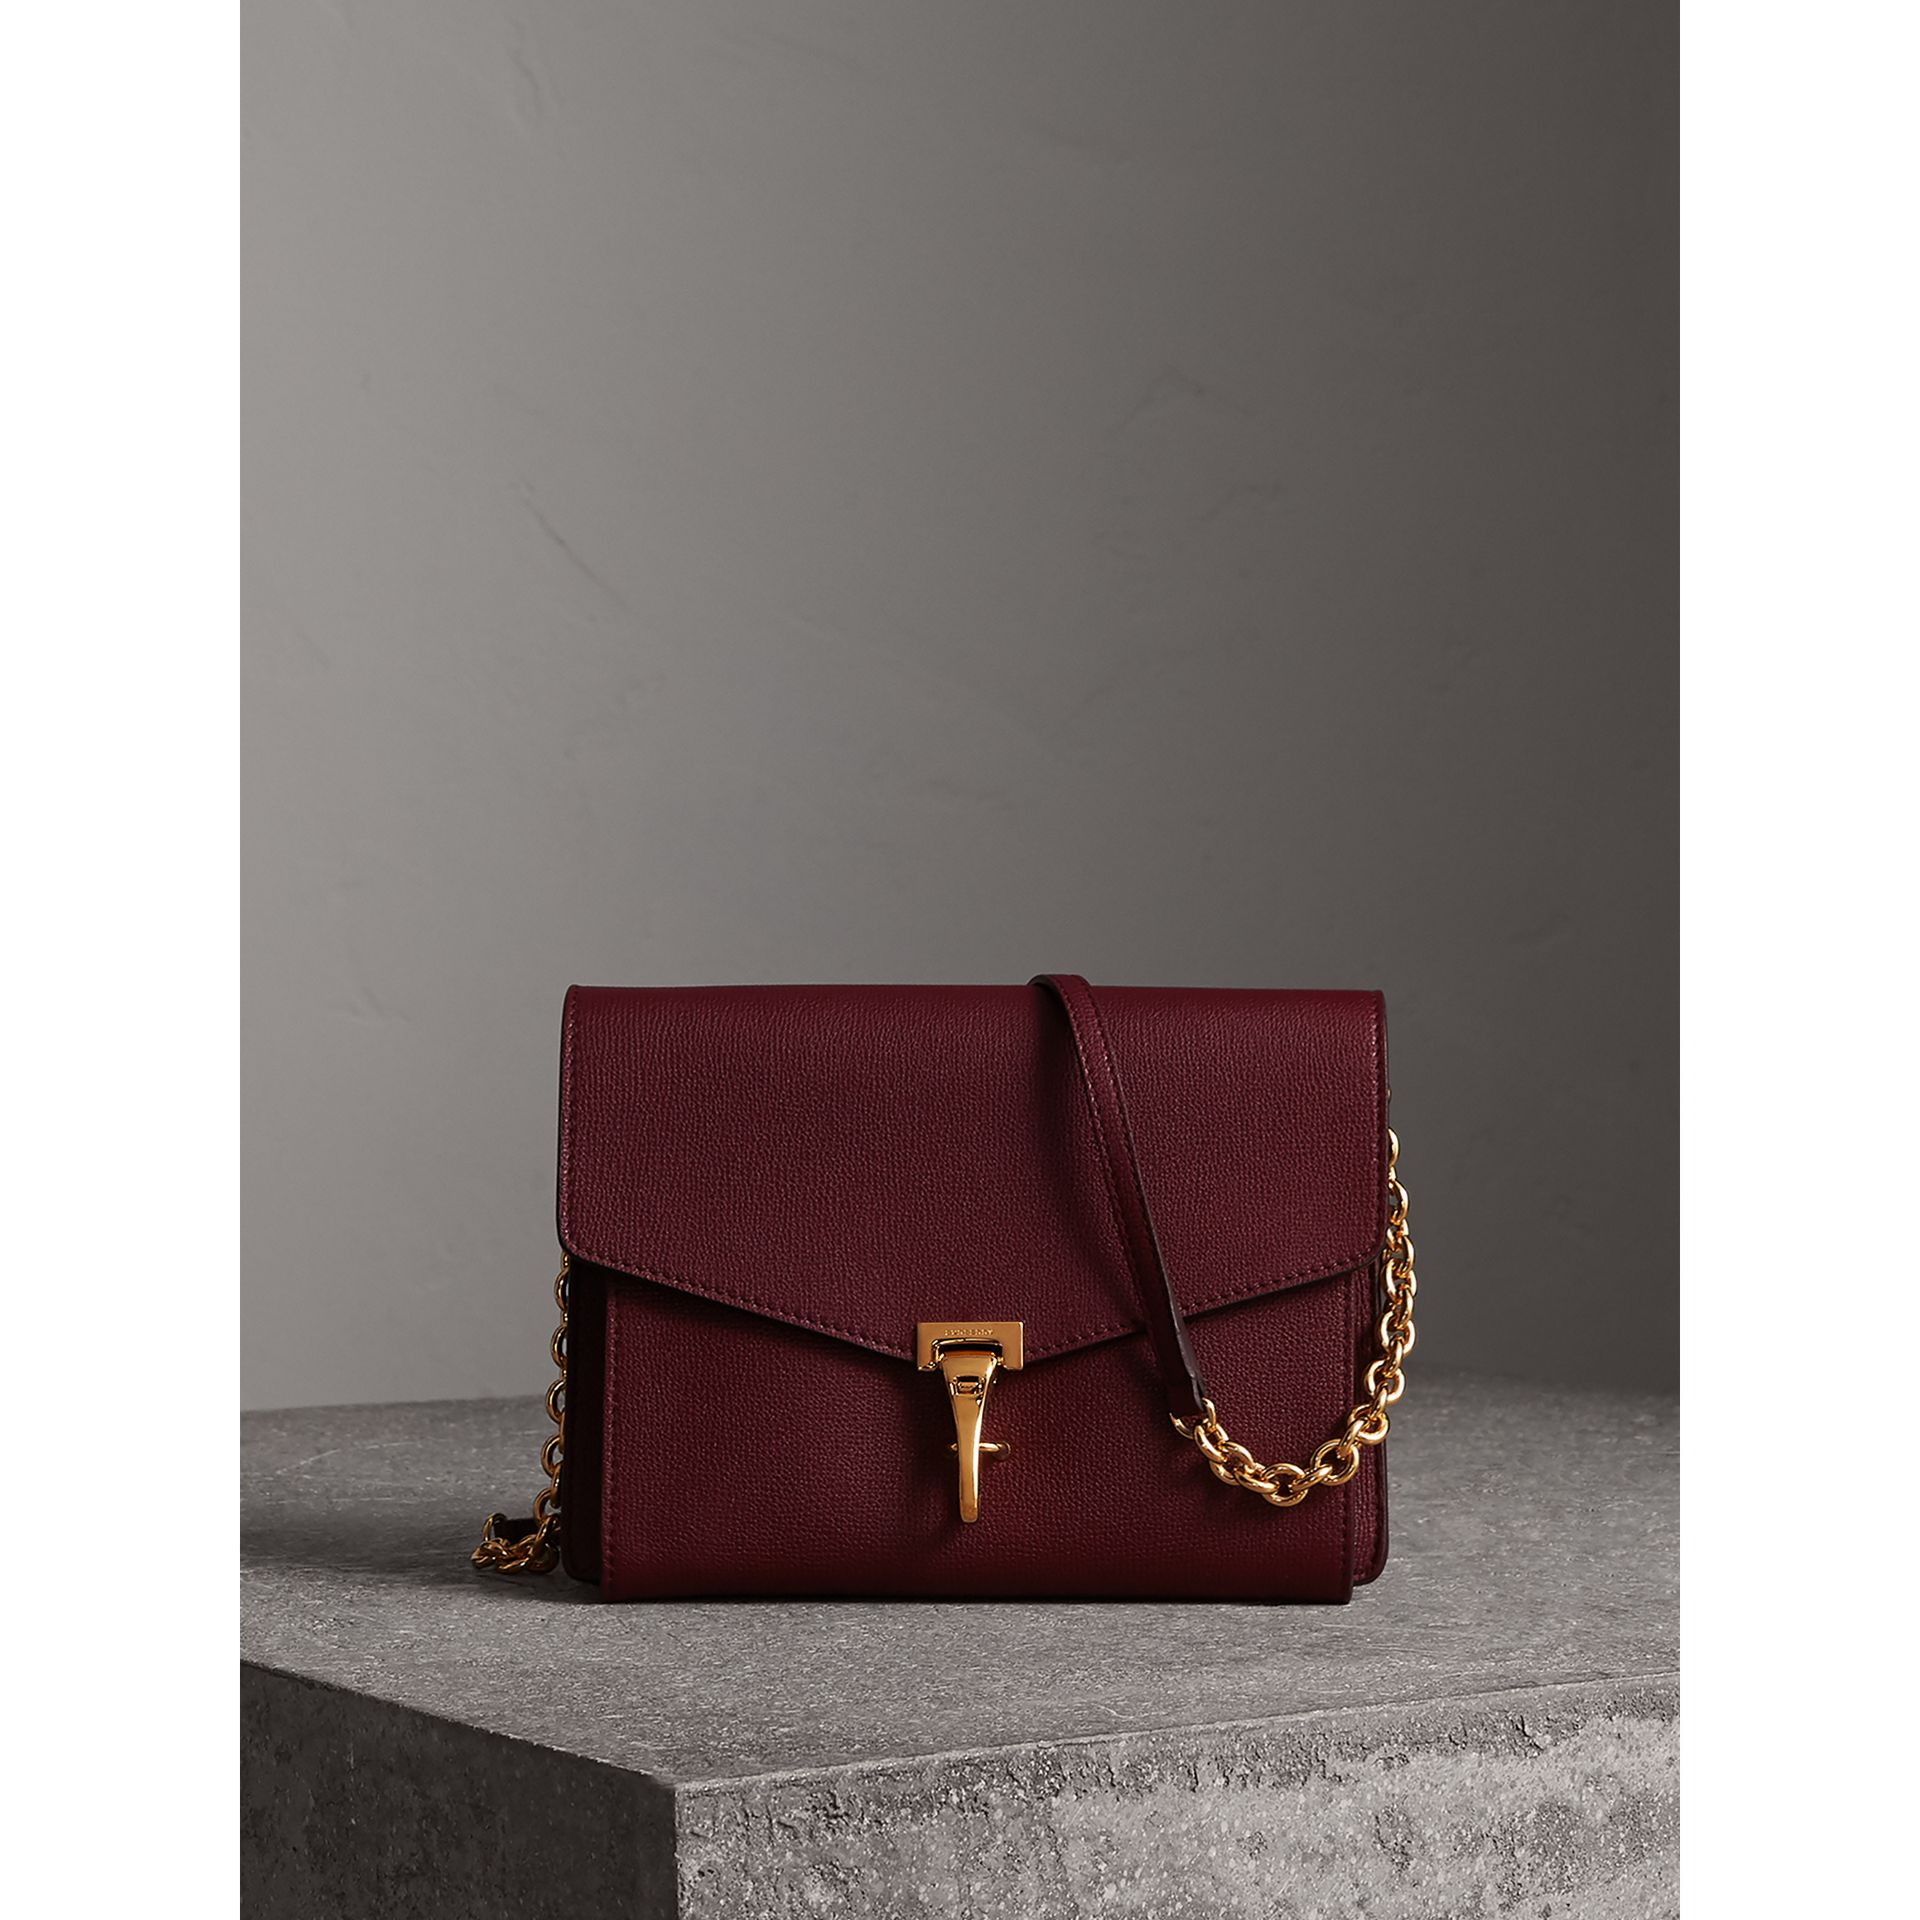 Small Leather Crossbody Bag in Mahogany Red - Women | Burberry Australia - gallery image 1